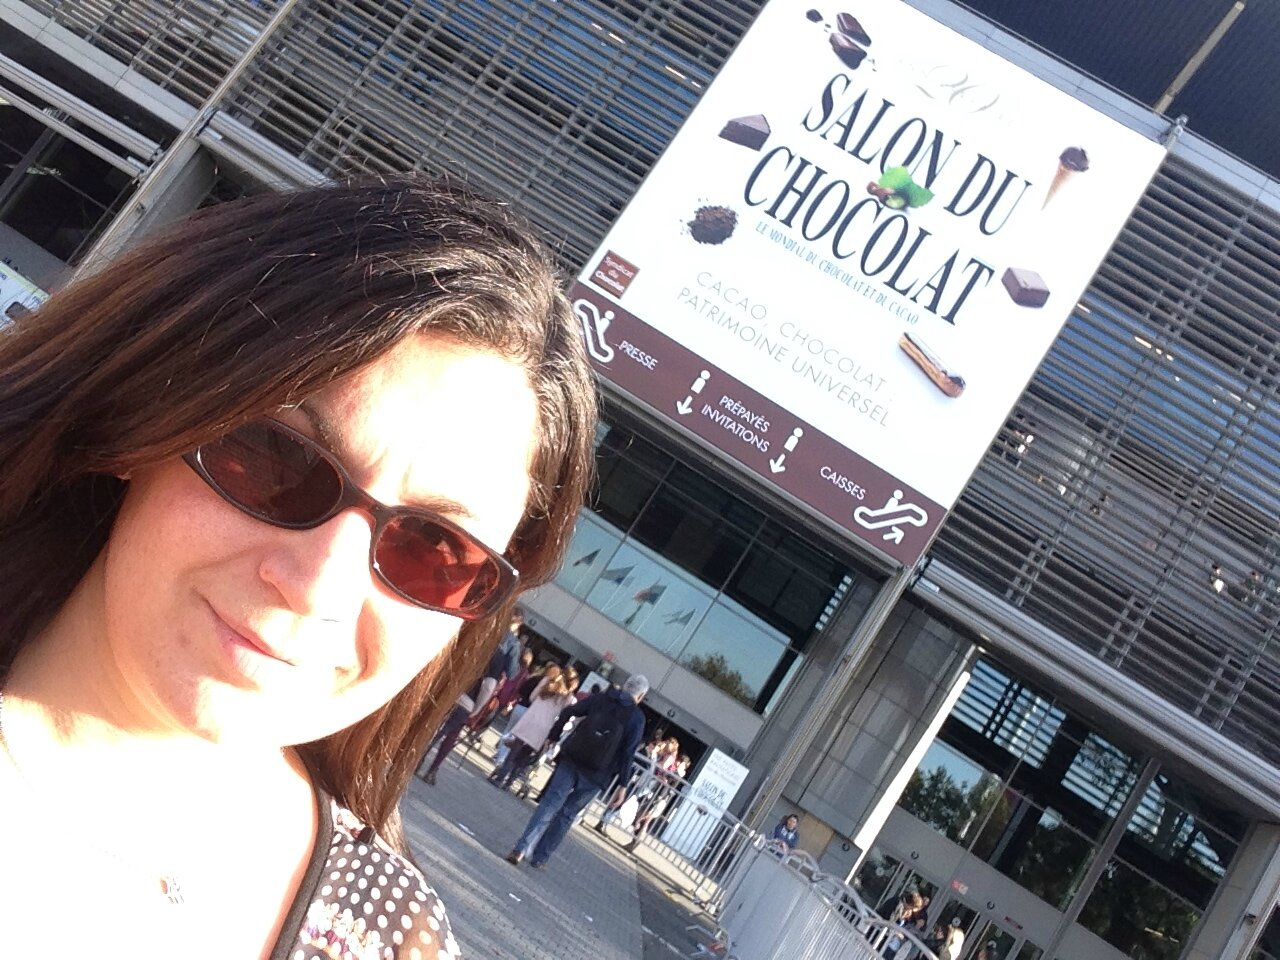 Salon du Chocolat - PARIS (20 ans !)